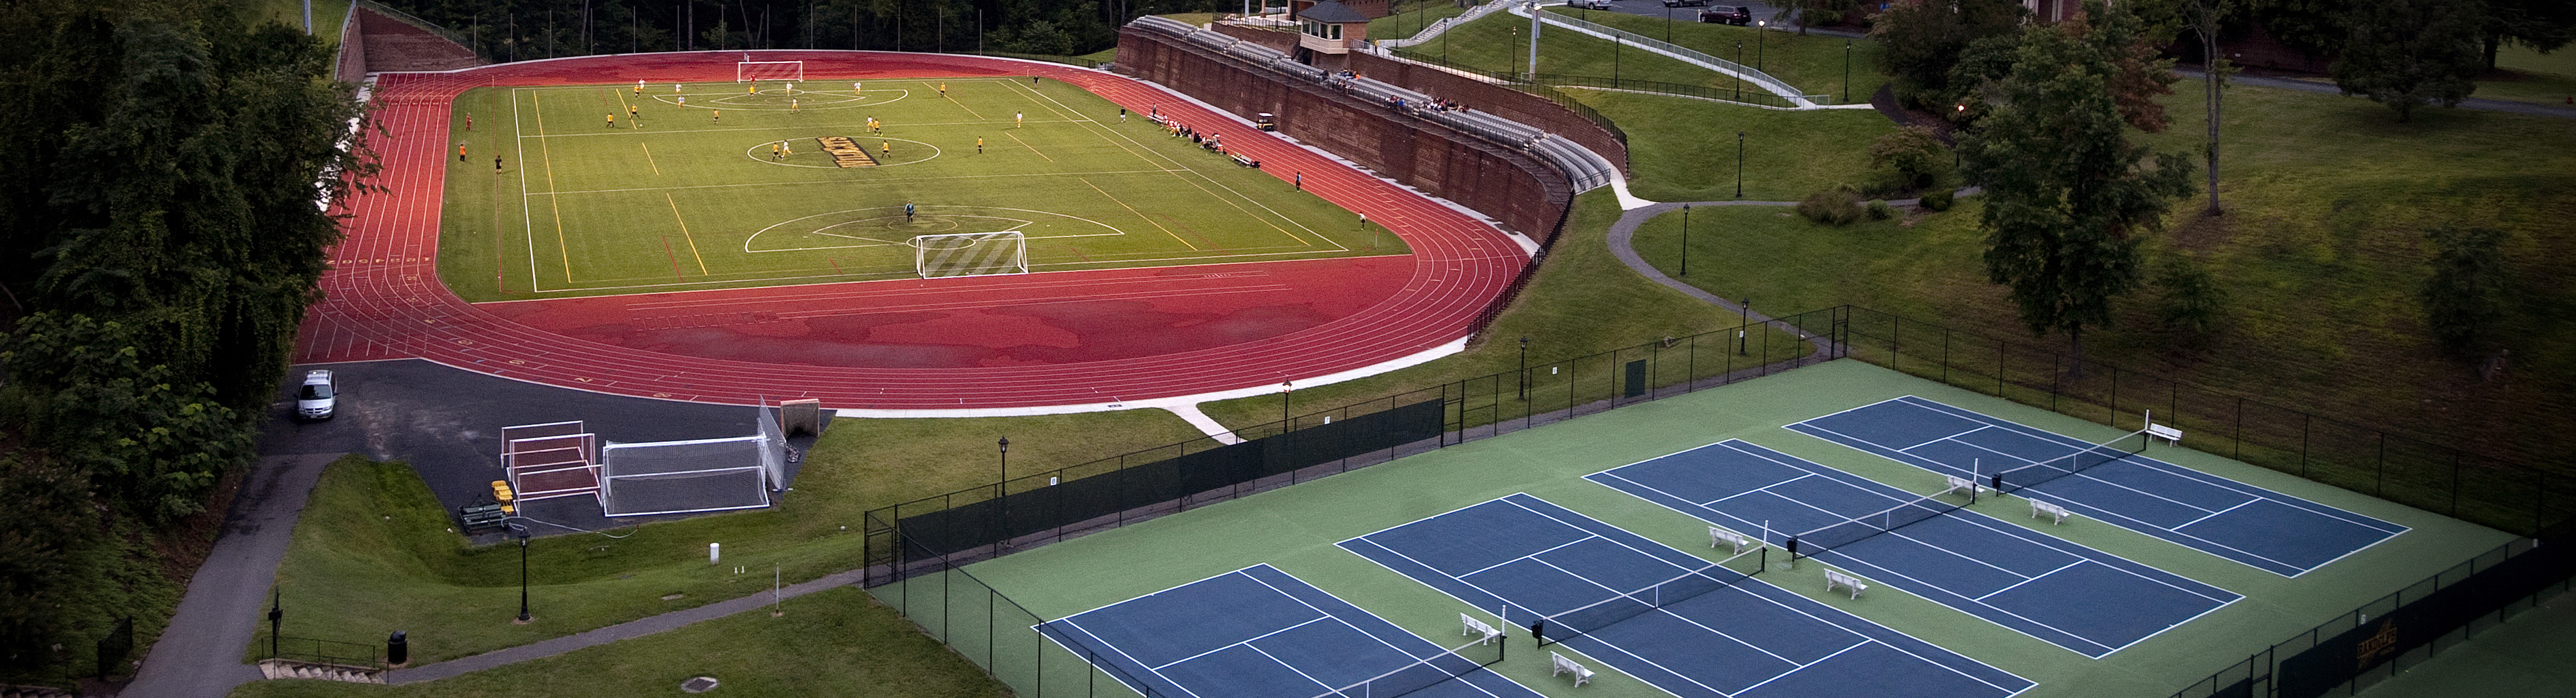 Photo of soccer field and tennis courts